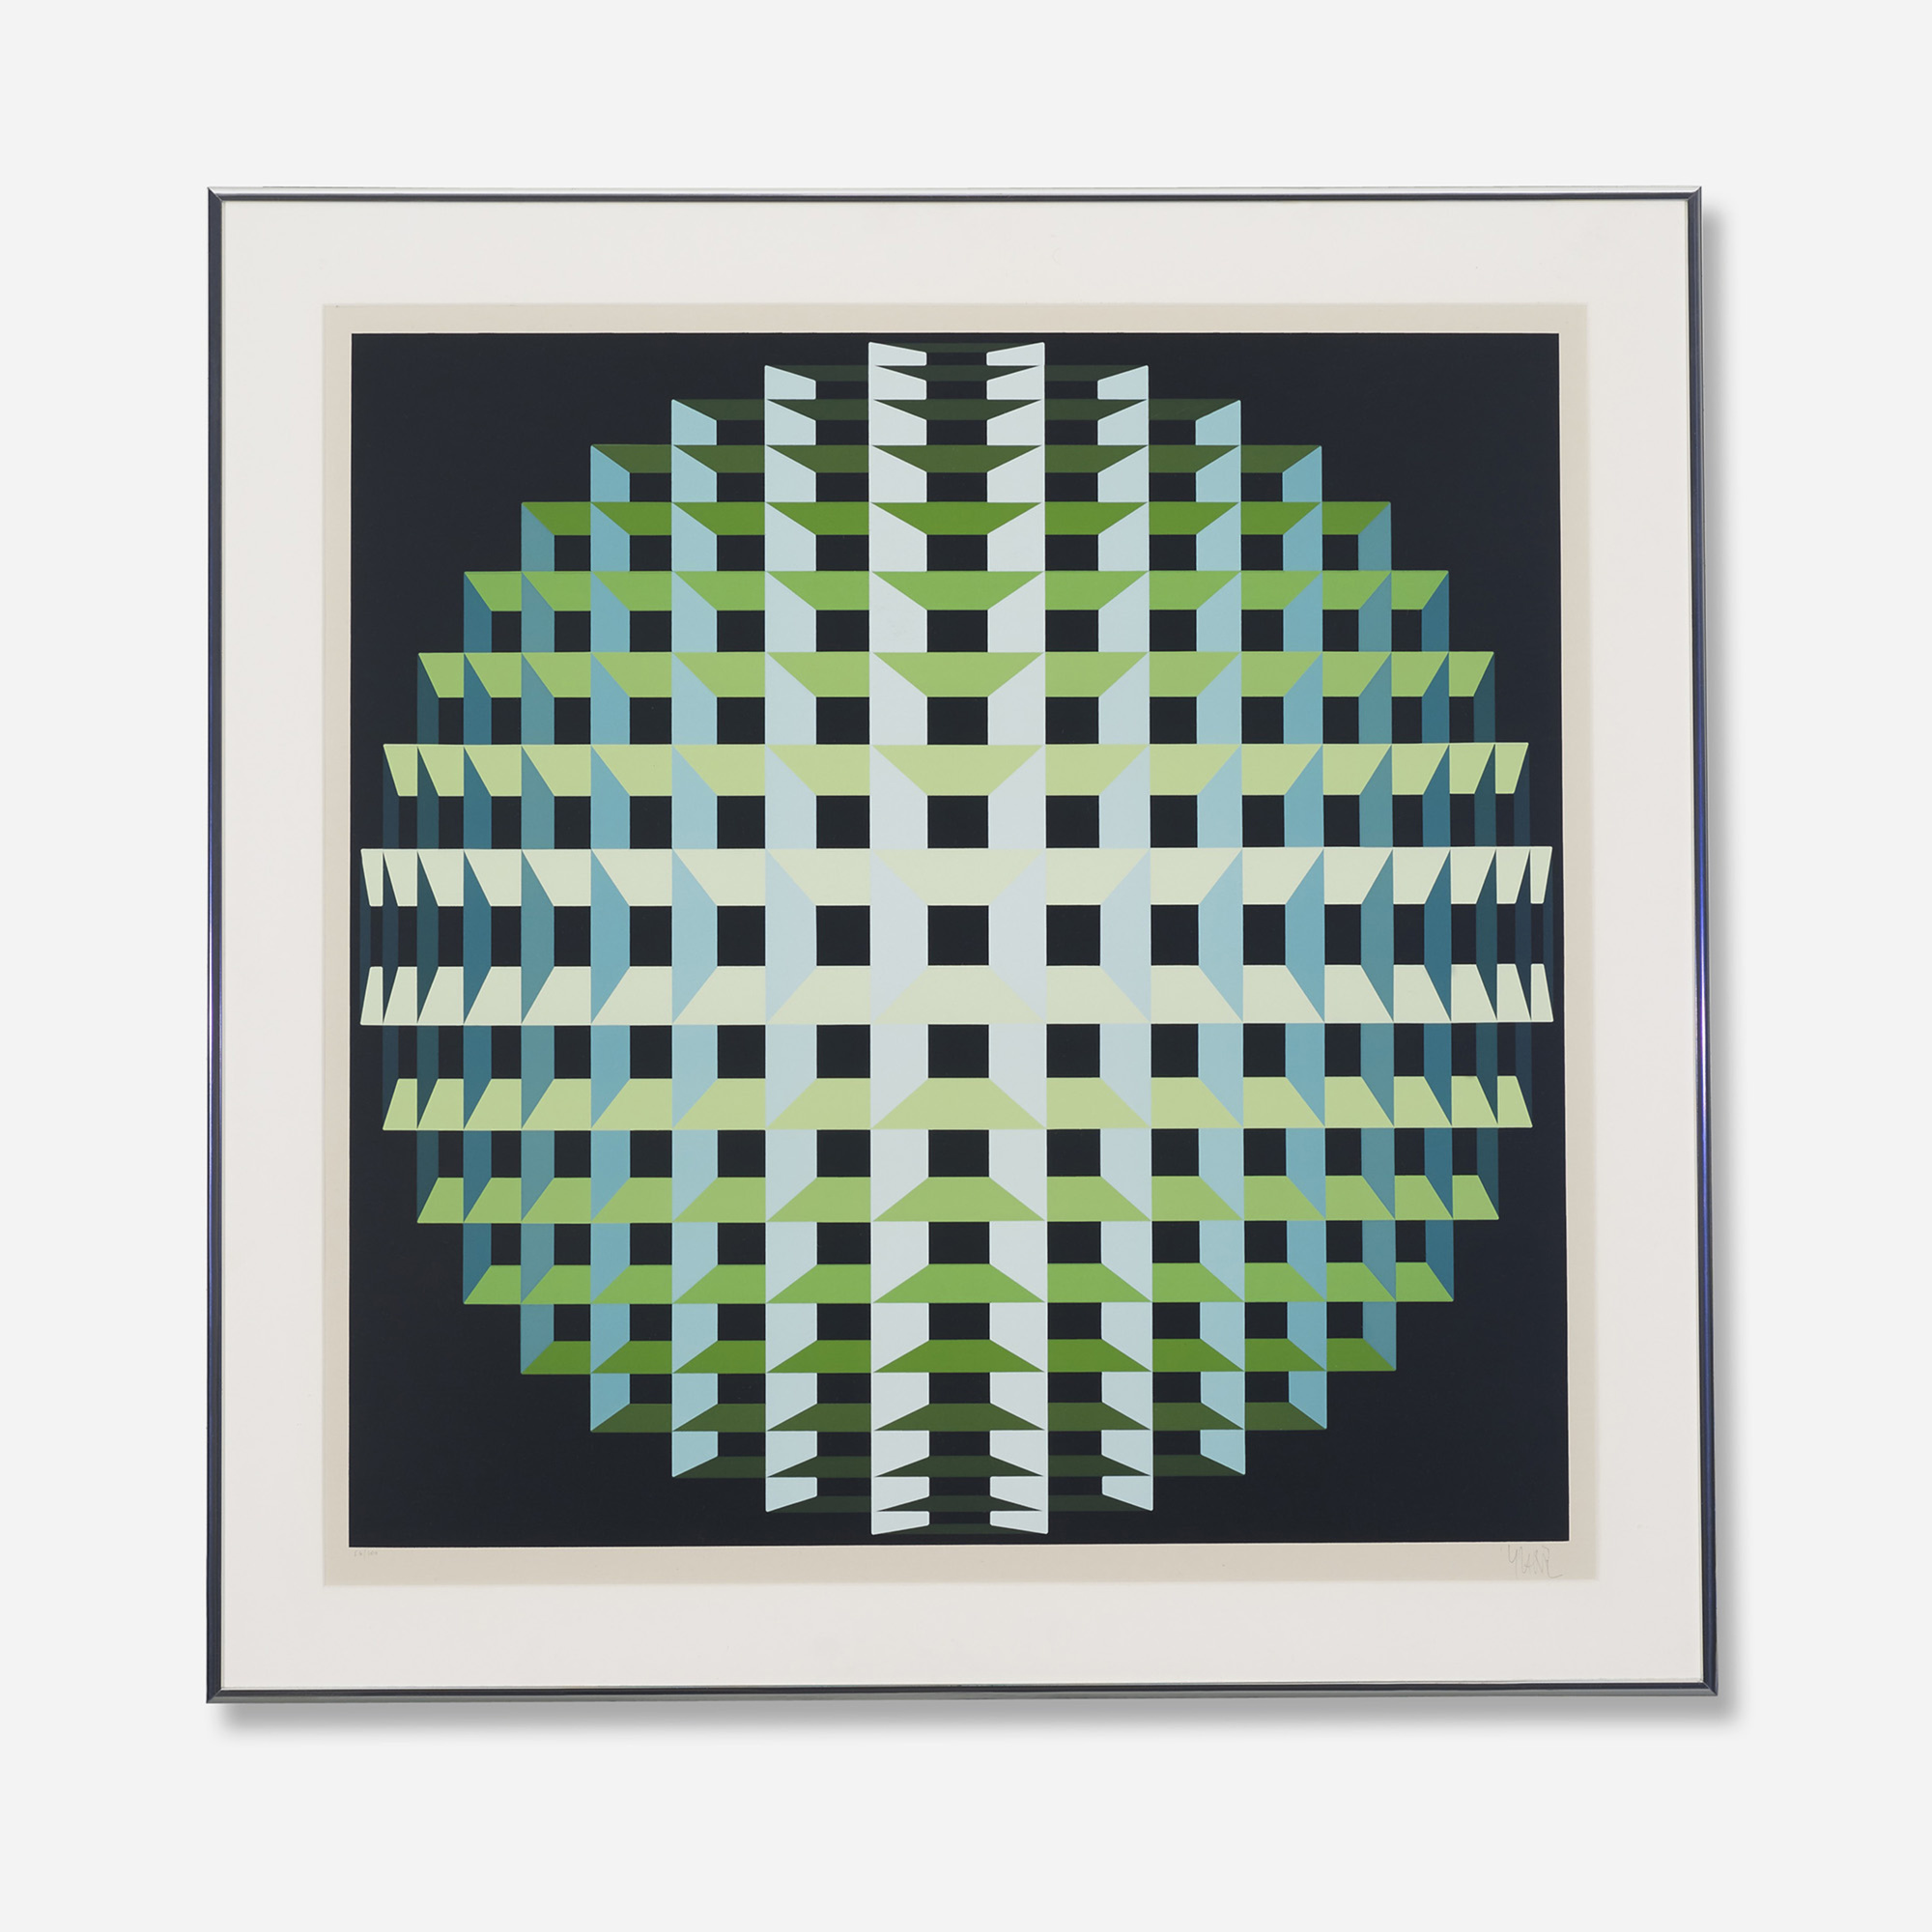 771: Yvaral (Jean-Pierre Vasarely) / Inner Depth (1 of 2)